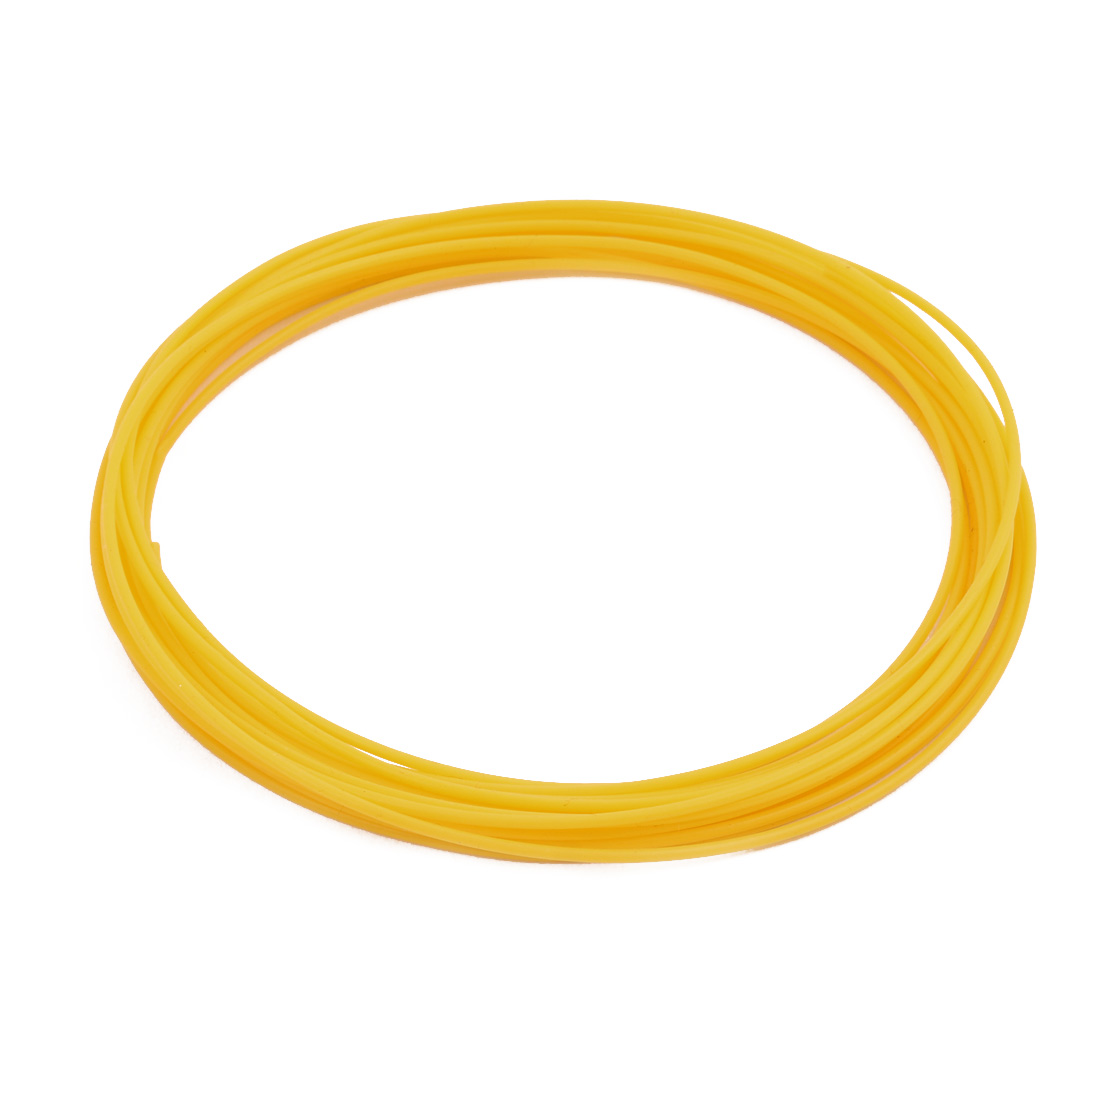 1.19mmx1.49mm PTFE Resistant High Temperature Yellow Tubing 5Meters 16.4Ft